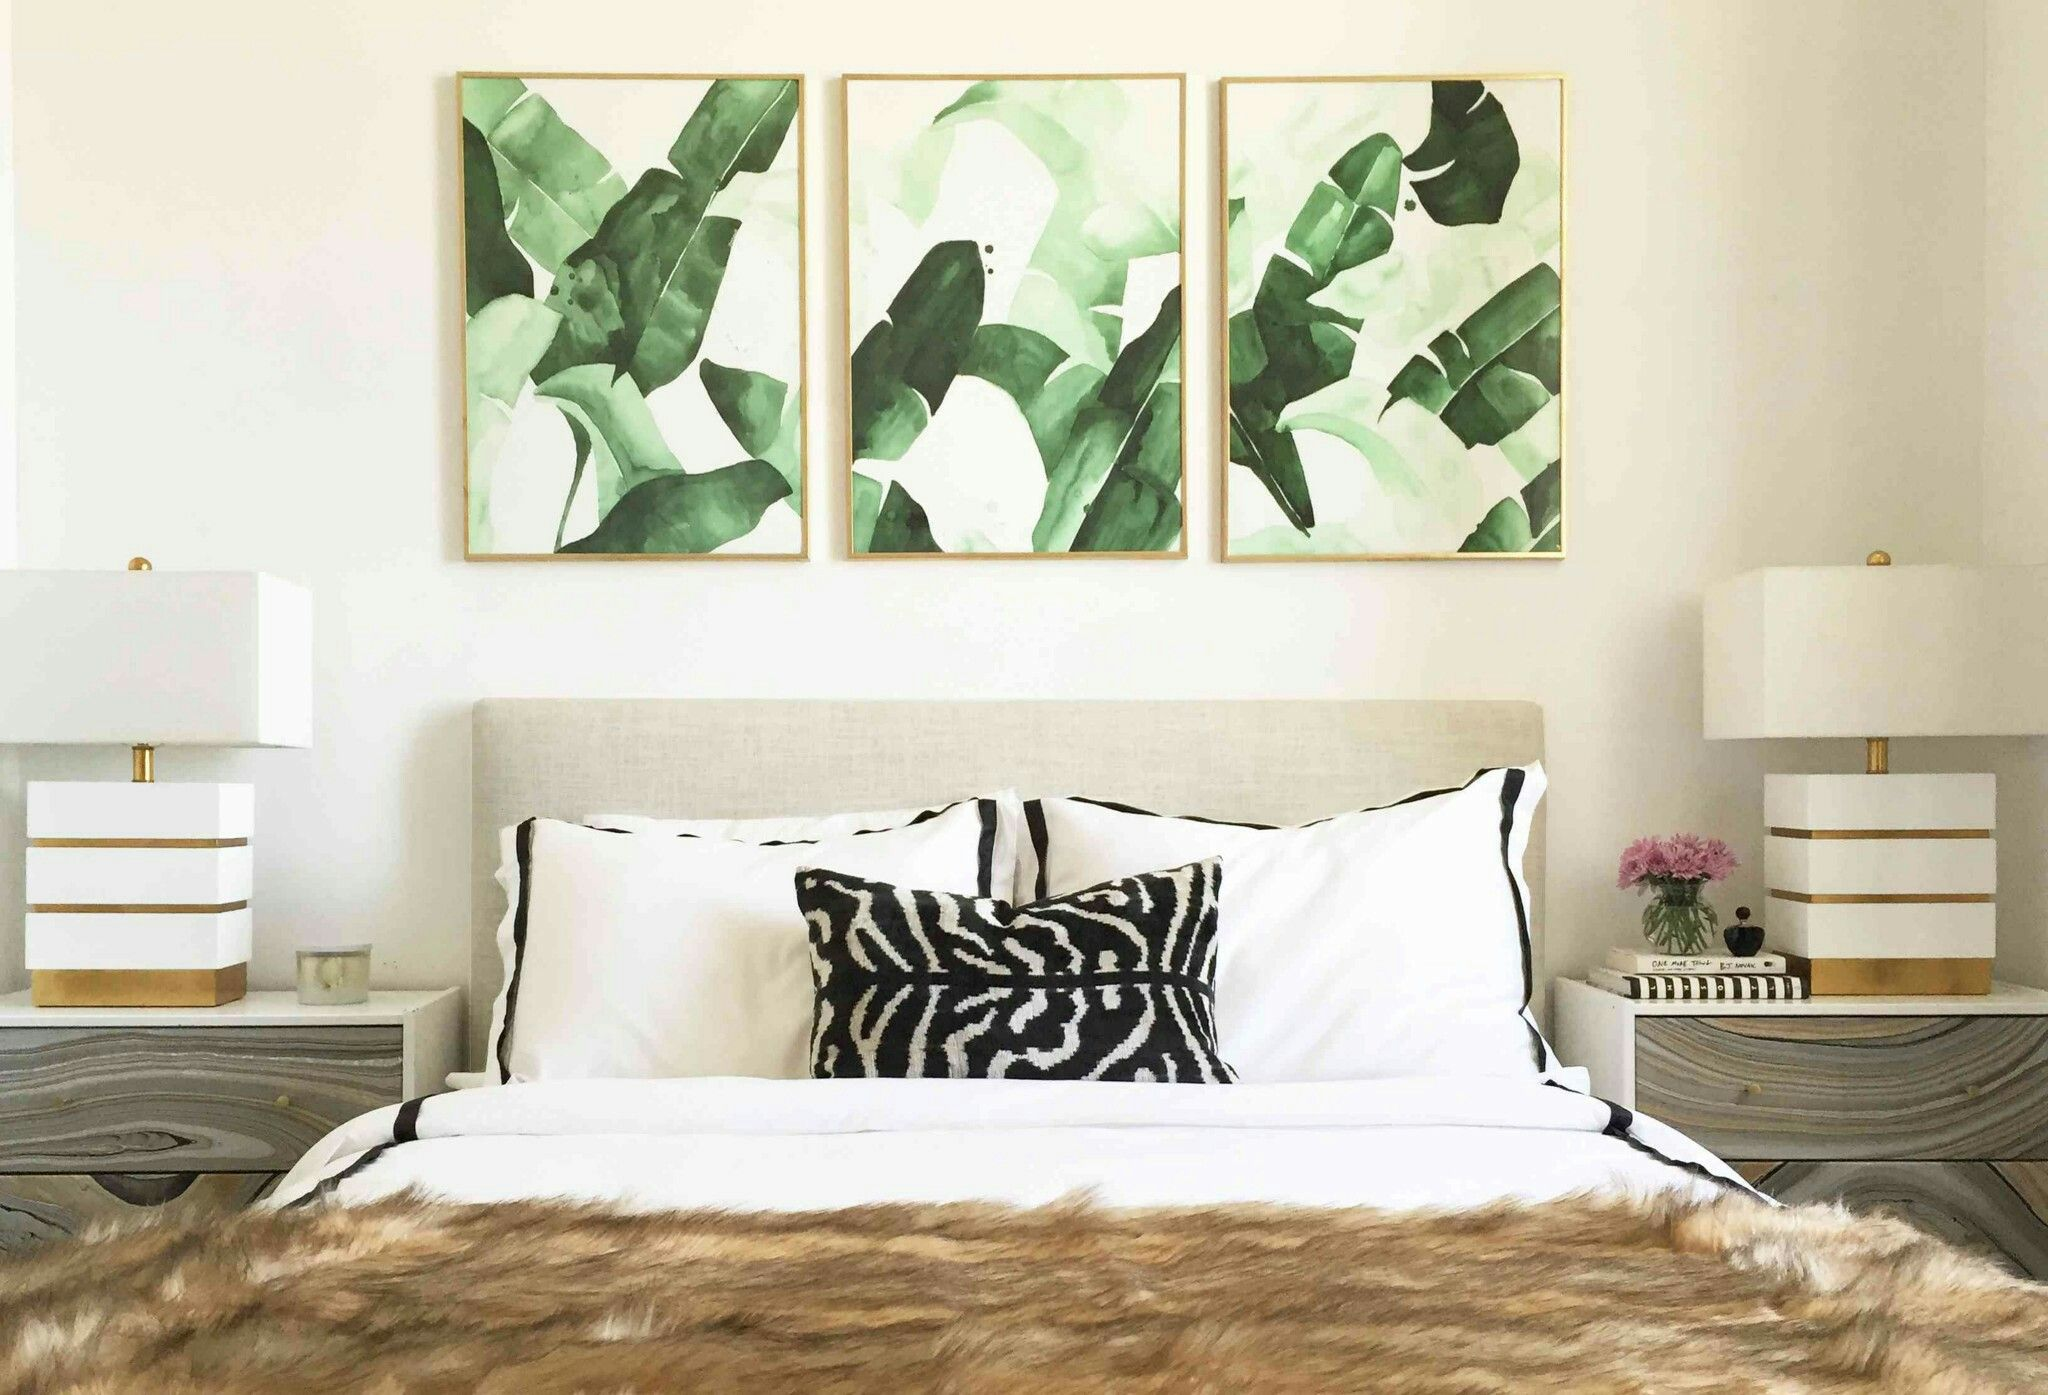 Sections Of Banana Leaf Wallpaper As Art Triptych